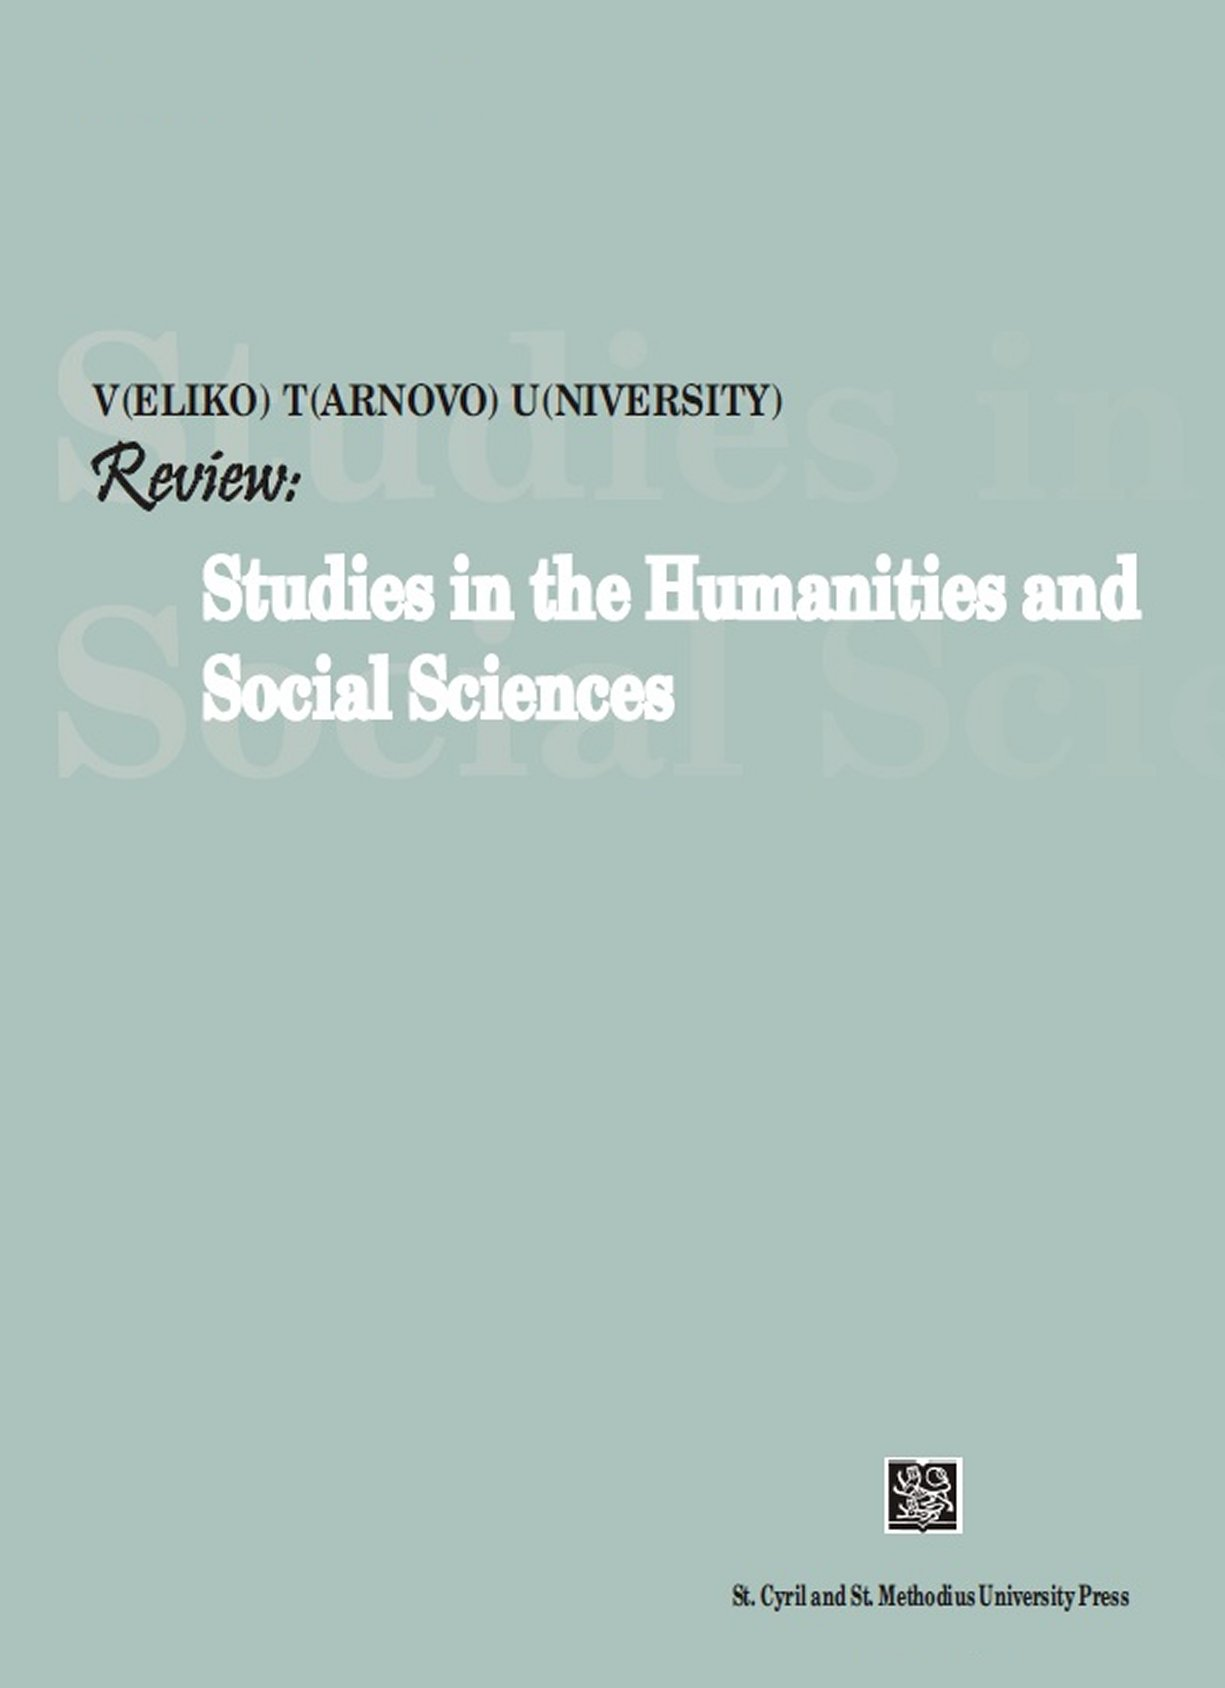 VTU Review: Studies in the Humanities and Social Sciences